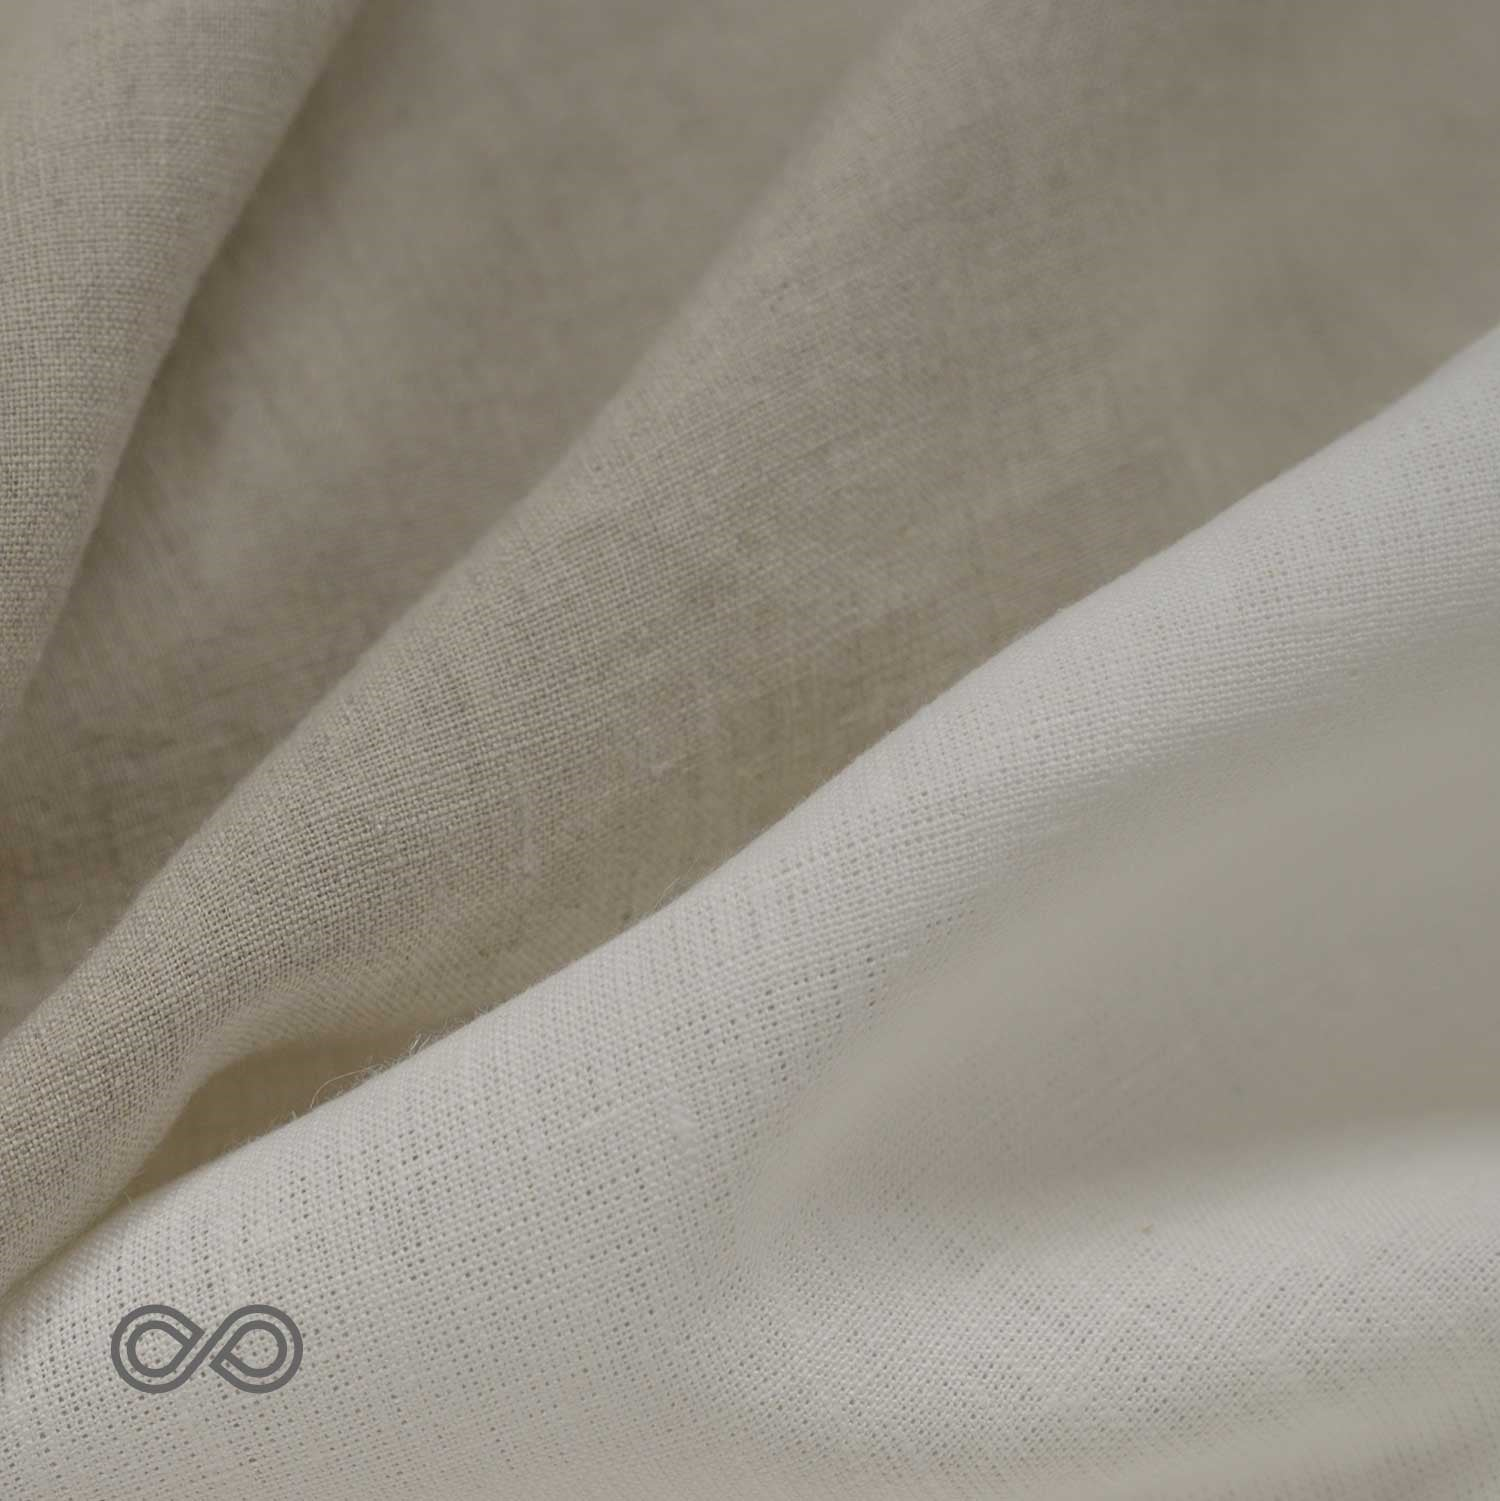 Fabric by the yard or meter Wide Natural undyed linen fabric Natural organic flax fabrics